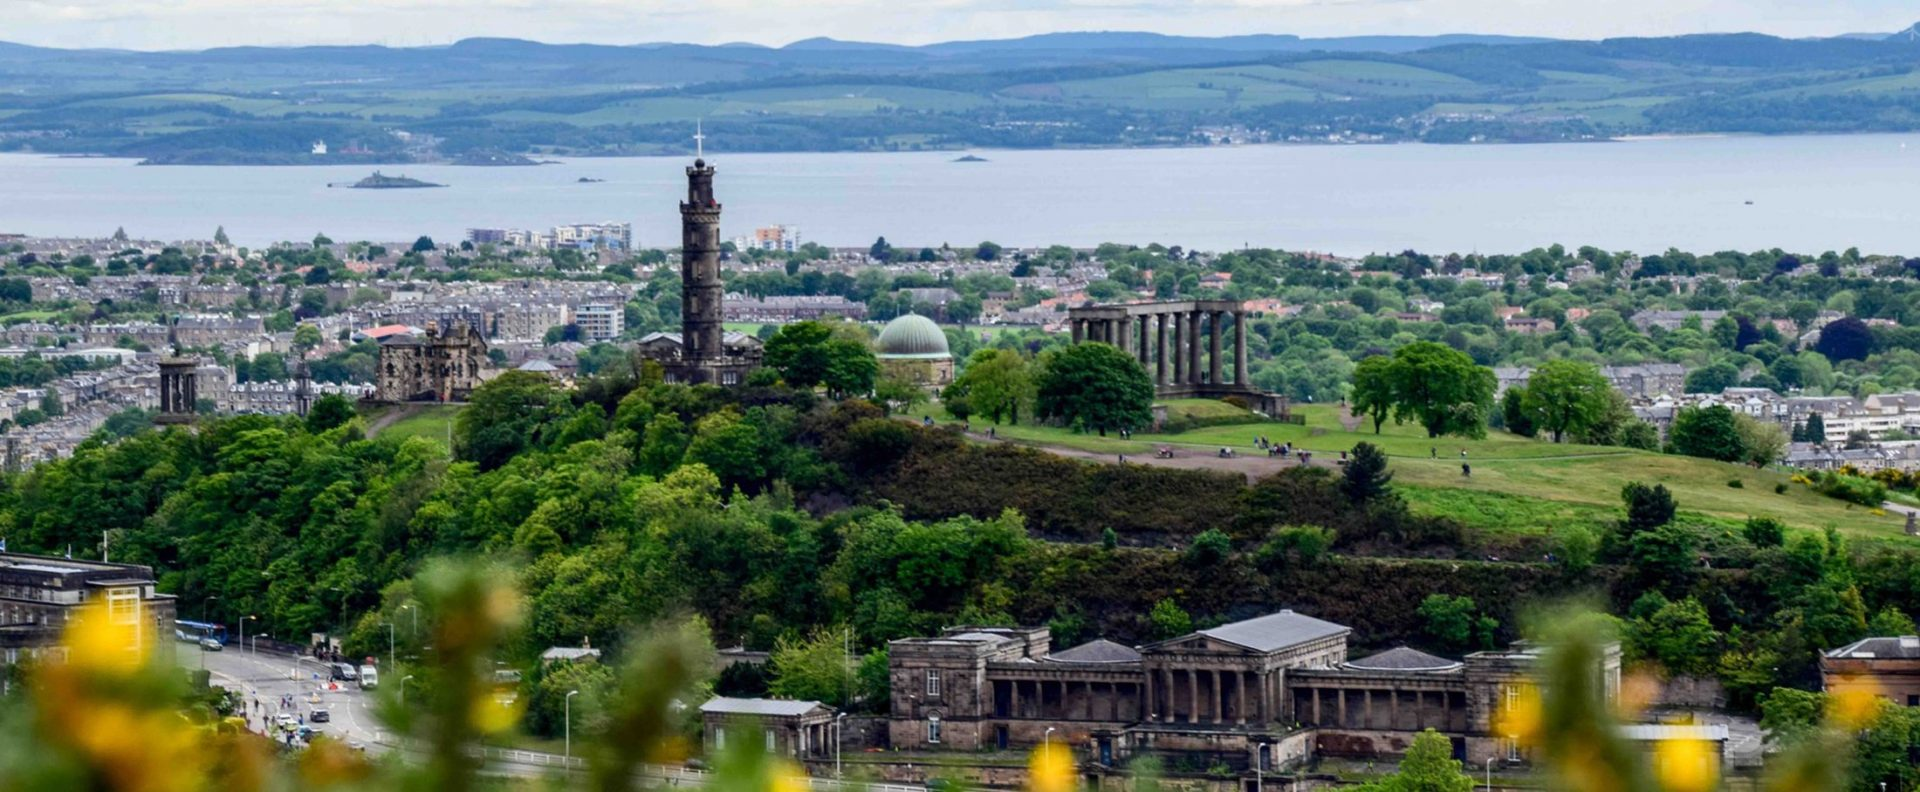 Old Waverley Hotel Gift Vouchers   Give an Experience - Things to Do This Easter in Edinburgh